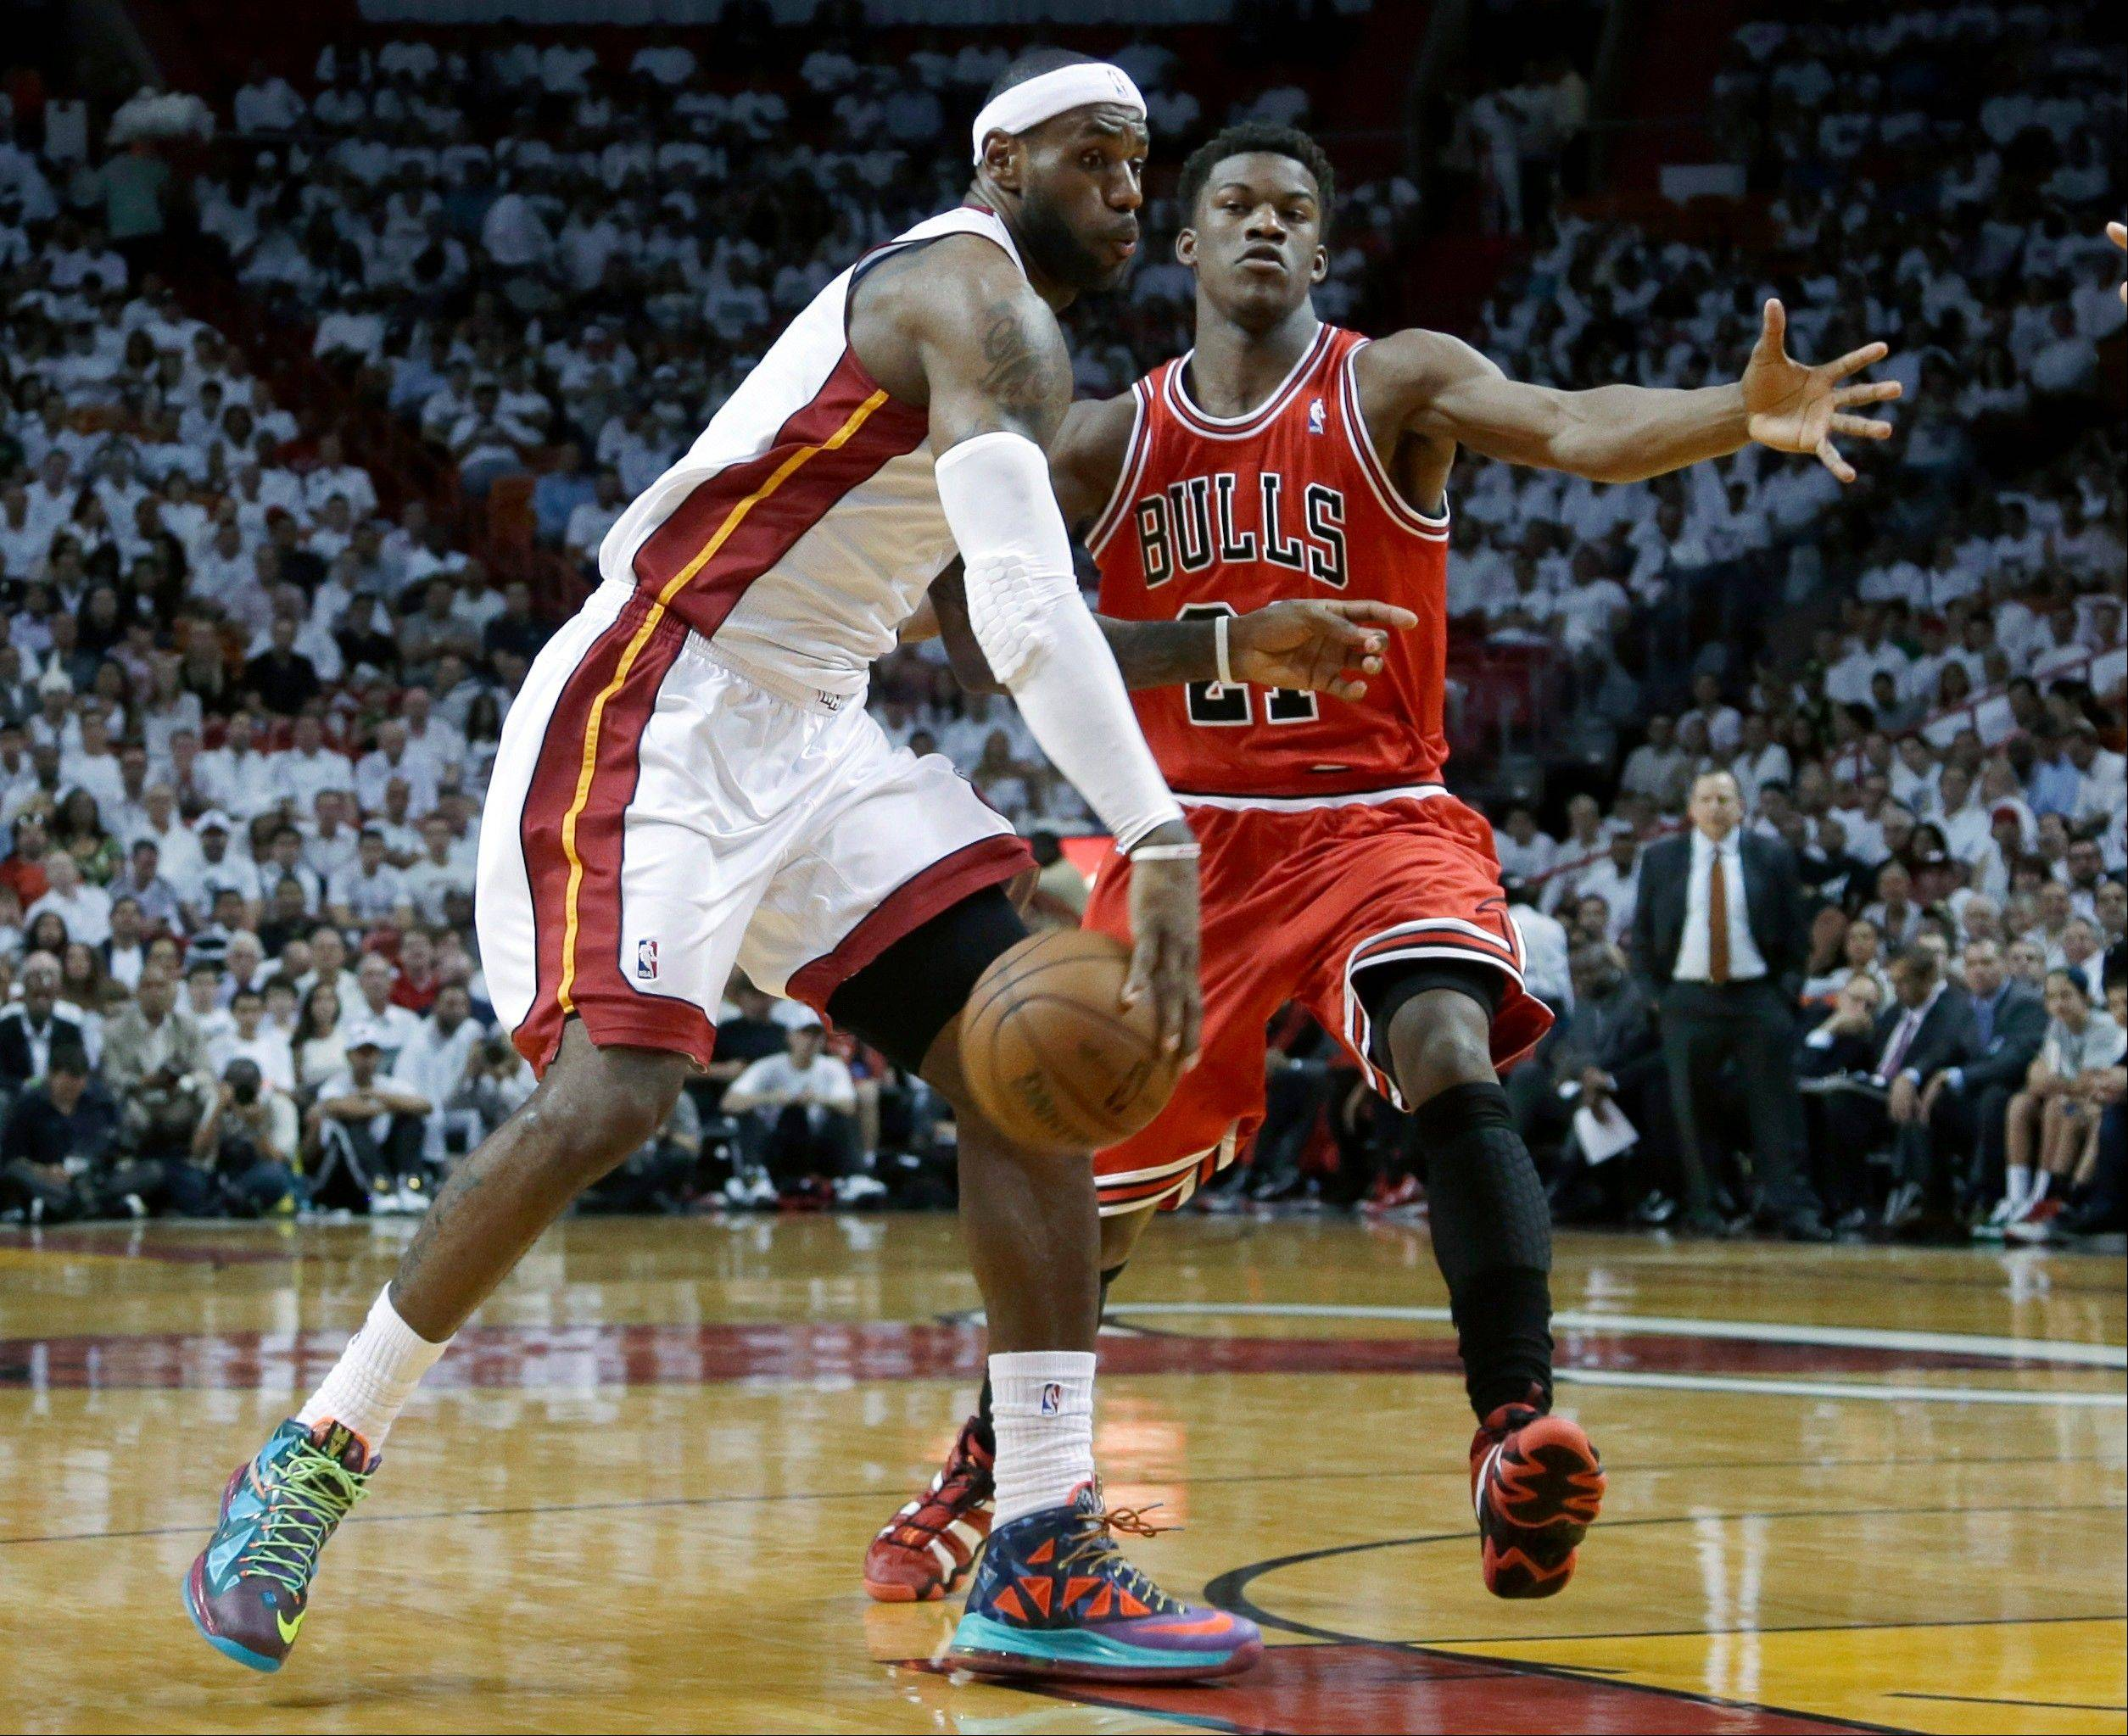 Miami Heat forward LeBron James, left, passes around Bulls forward Jimmy Butler during Monday's playoff game.